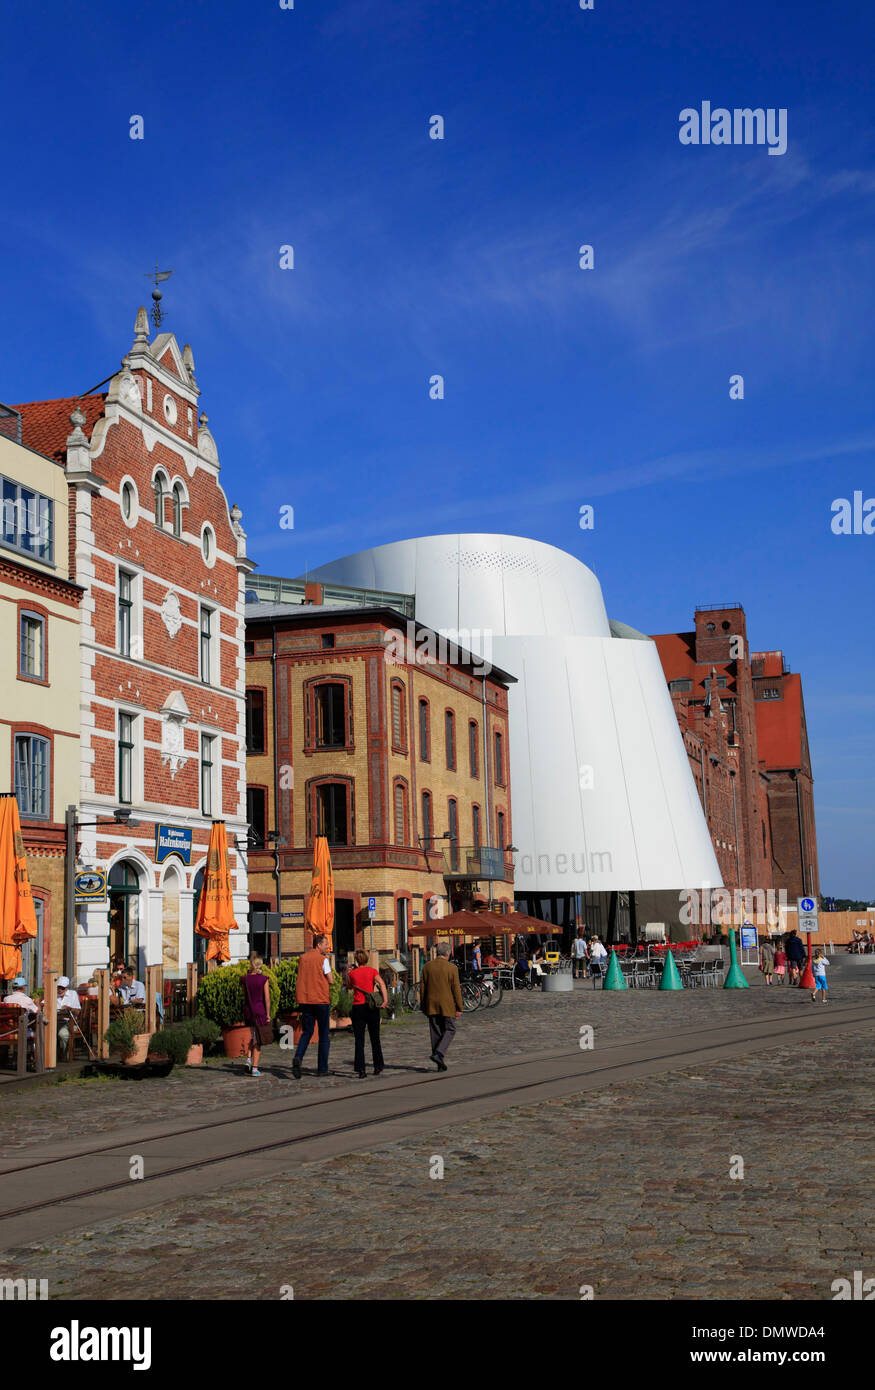 Hanseatic town Stralsund, Houses and Ozeaneum at harbour, Baltic Sea, Mecklenburg-Western Pomerania, Germany, Europe - Stock Image